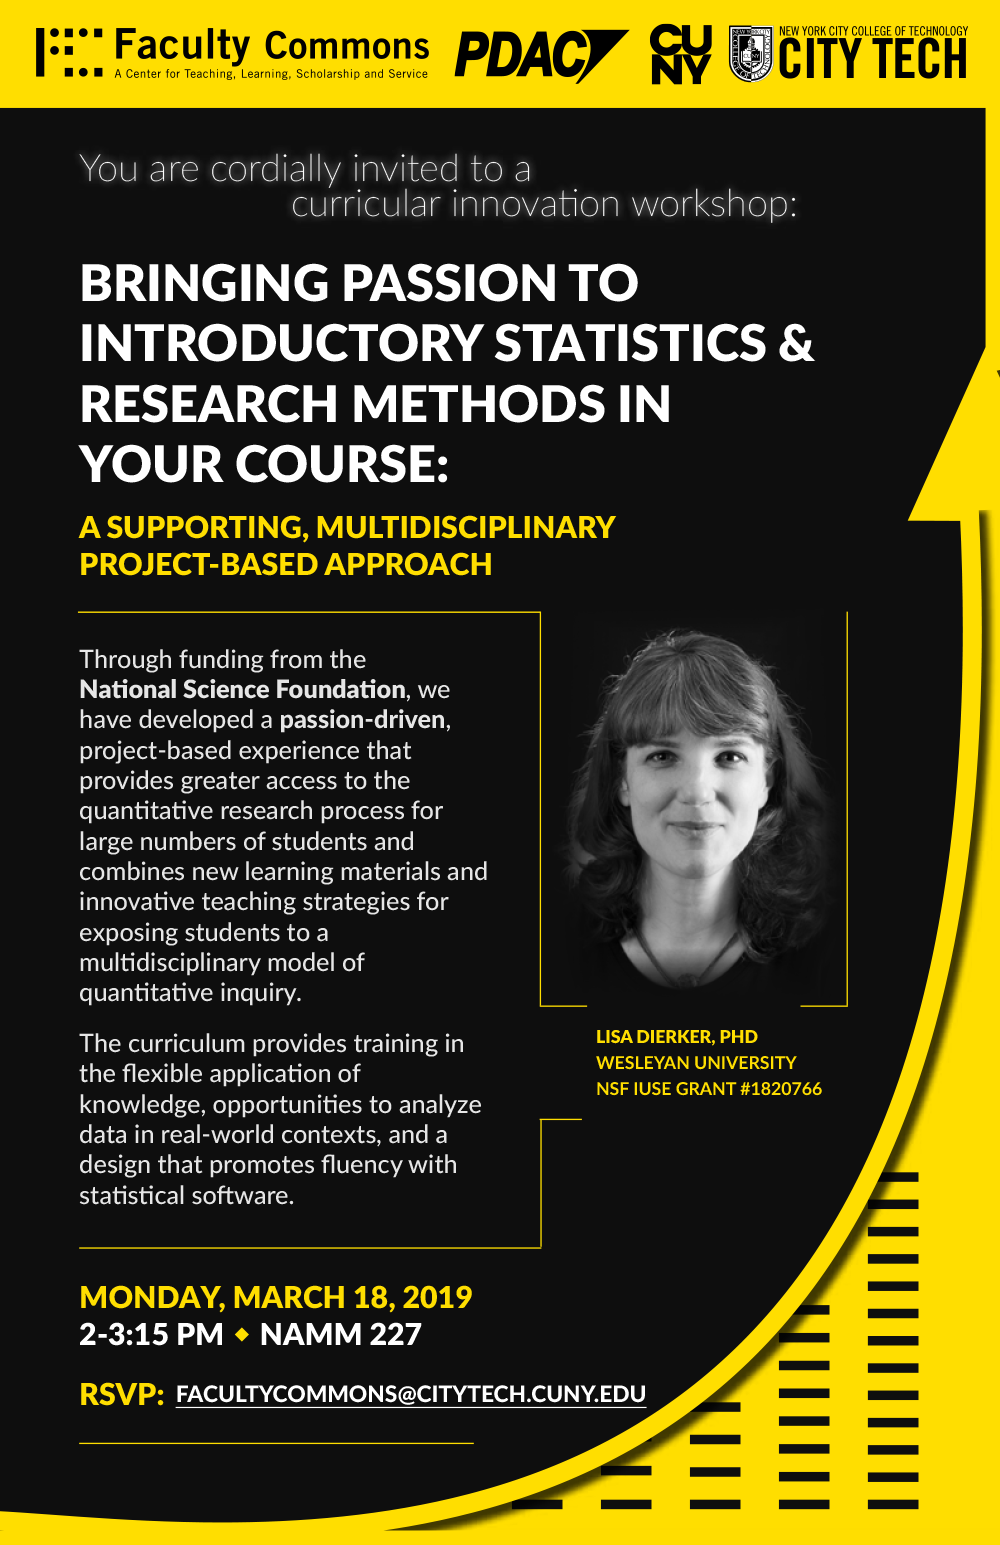 Bringing Passion To Introductory Statistics & Research Methods In Your Course 2